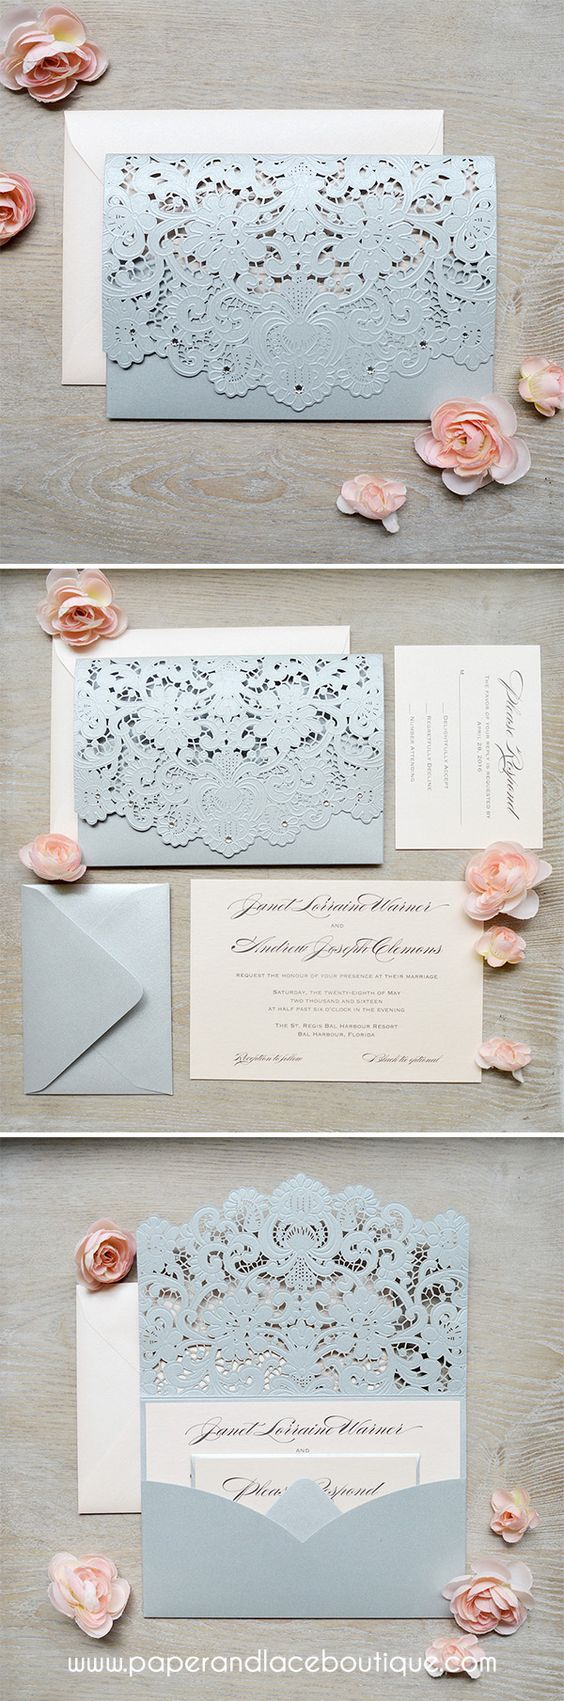 Ideas about map wedding invitation on pinterest - 25 Best Invitations Ideas On Pinterest Wedding Invitations Wedding Invitation And Wedding Stationary